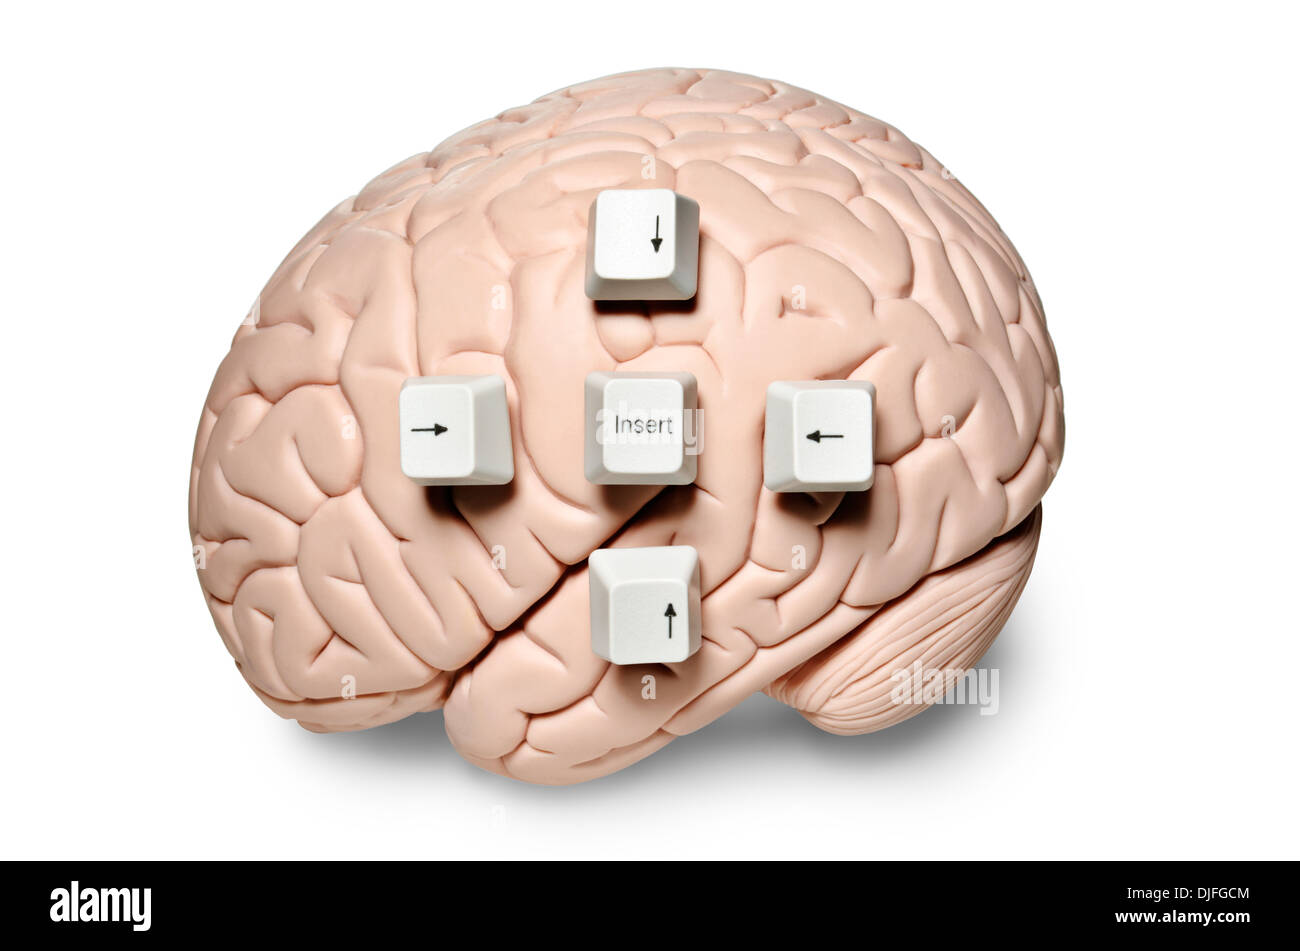 Human brain model with computer keys placed on it - Stock Image